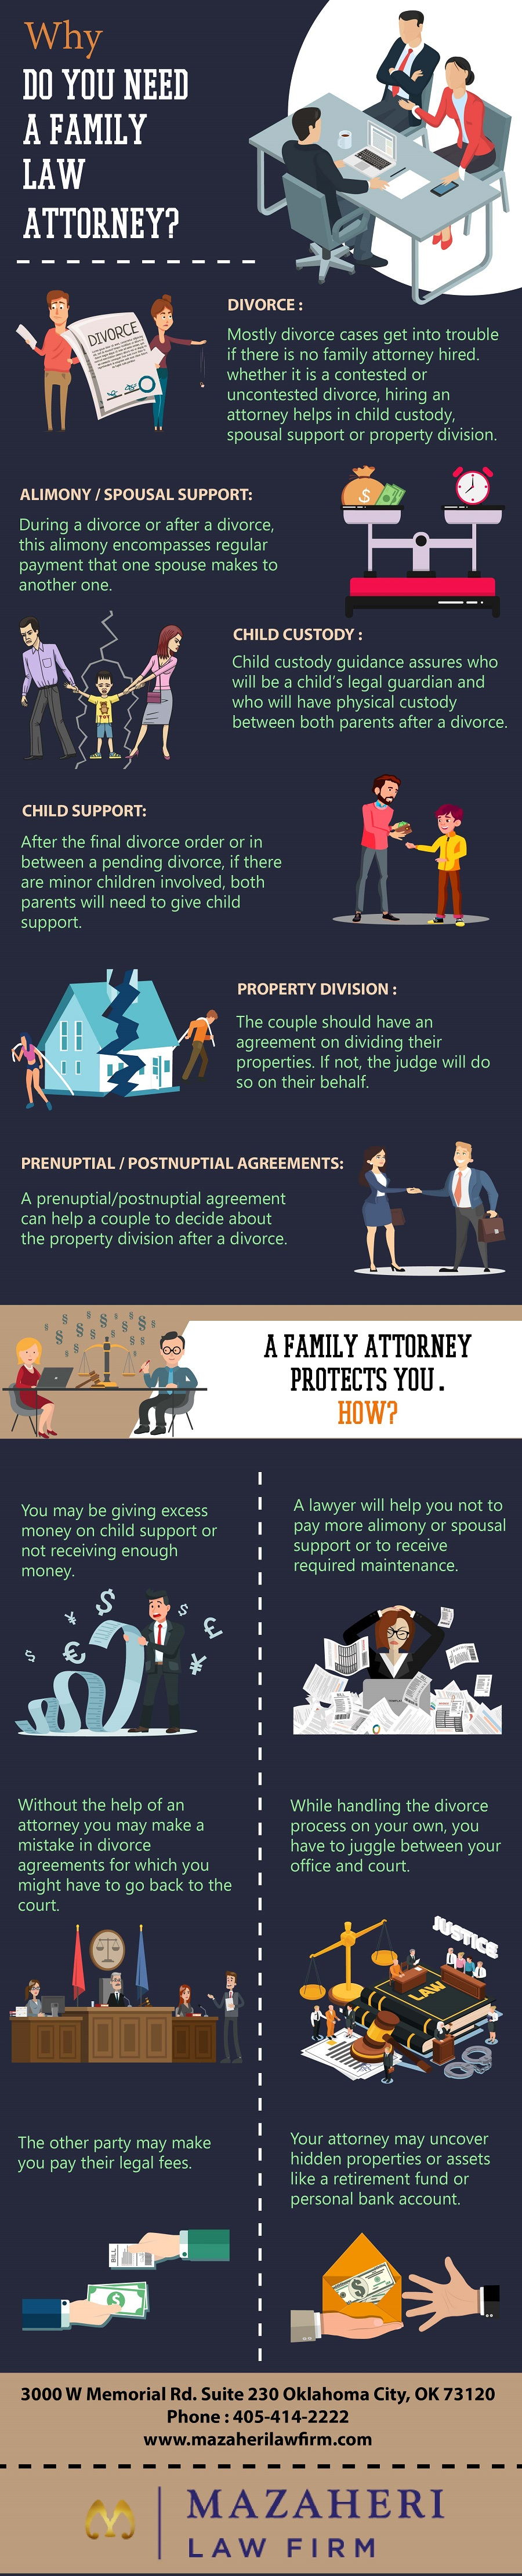 Why Do You Need A Family Law Attorney